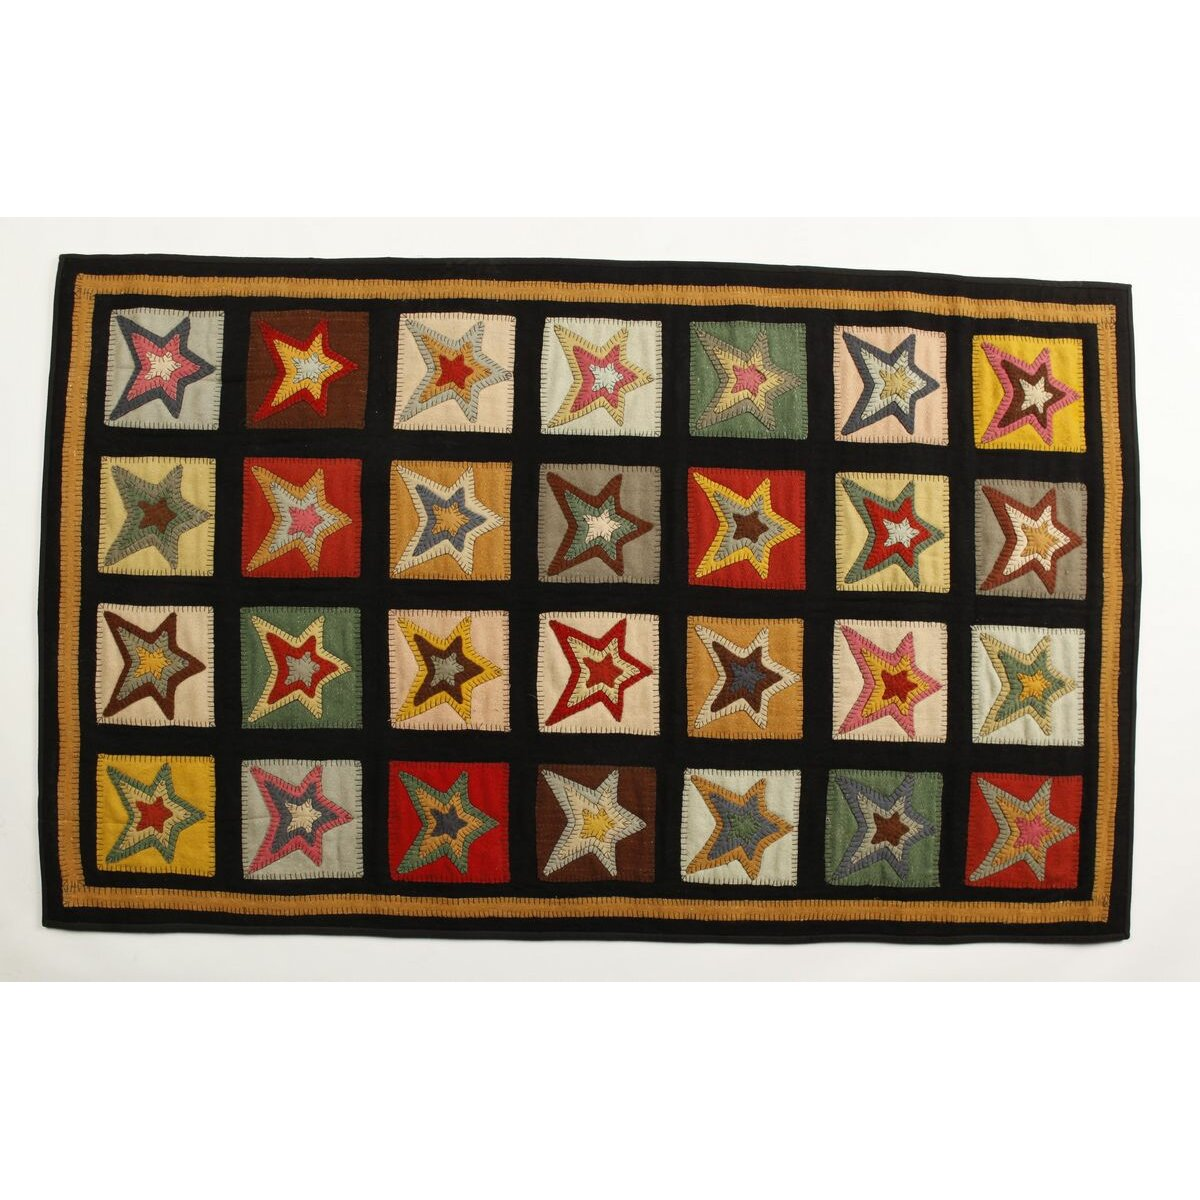 Homespice decor penny star patch sampler black gold area for International home decor rugs